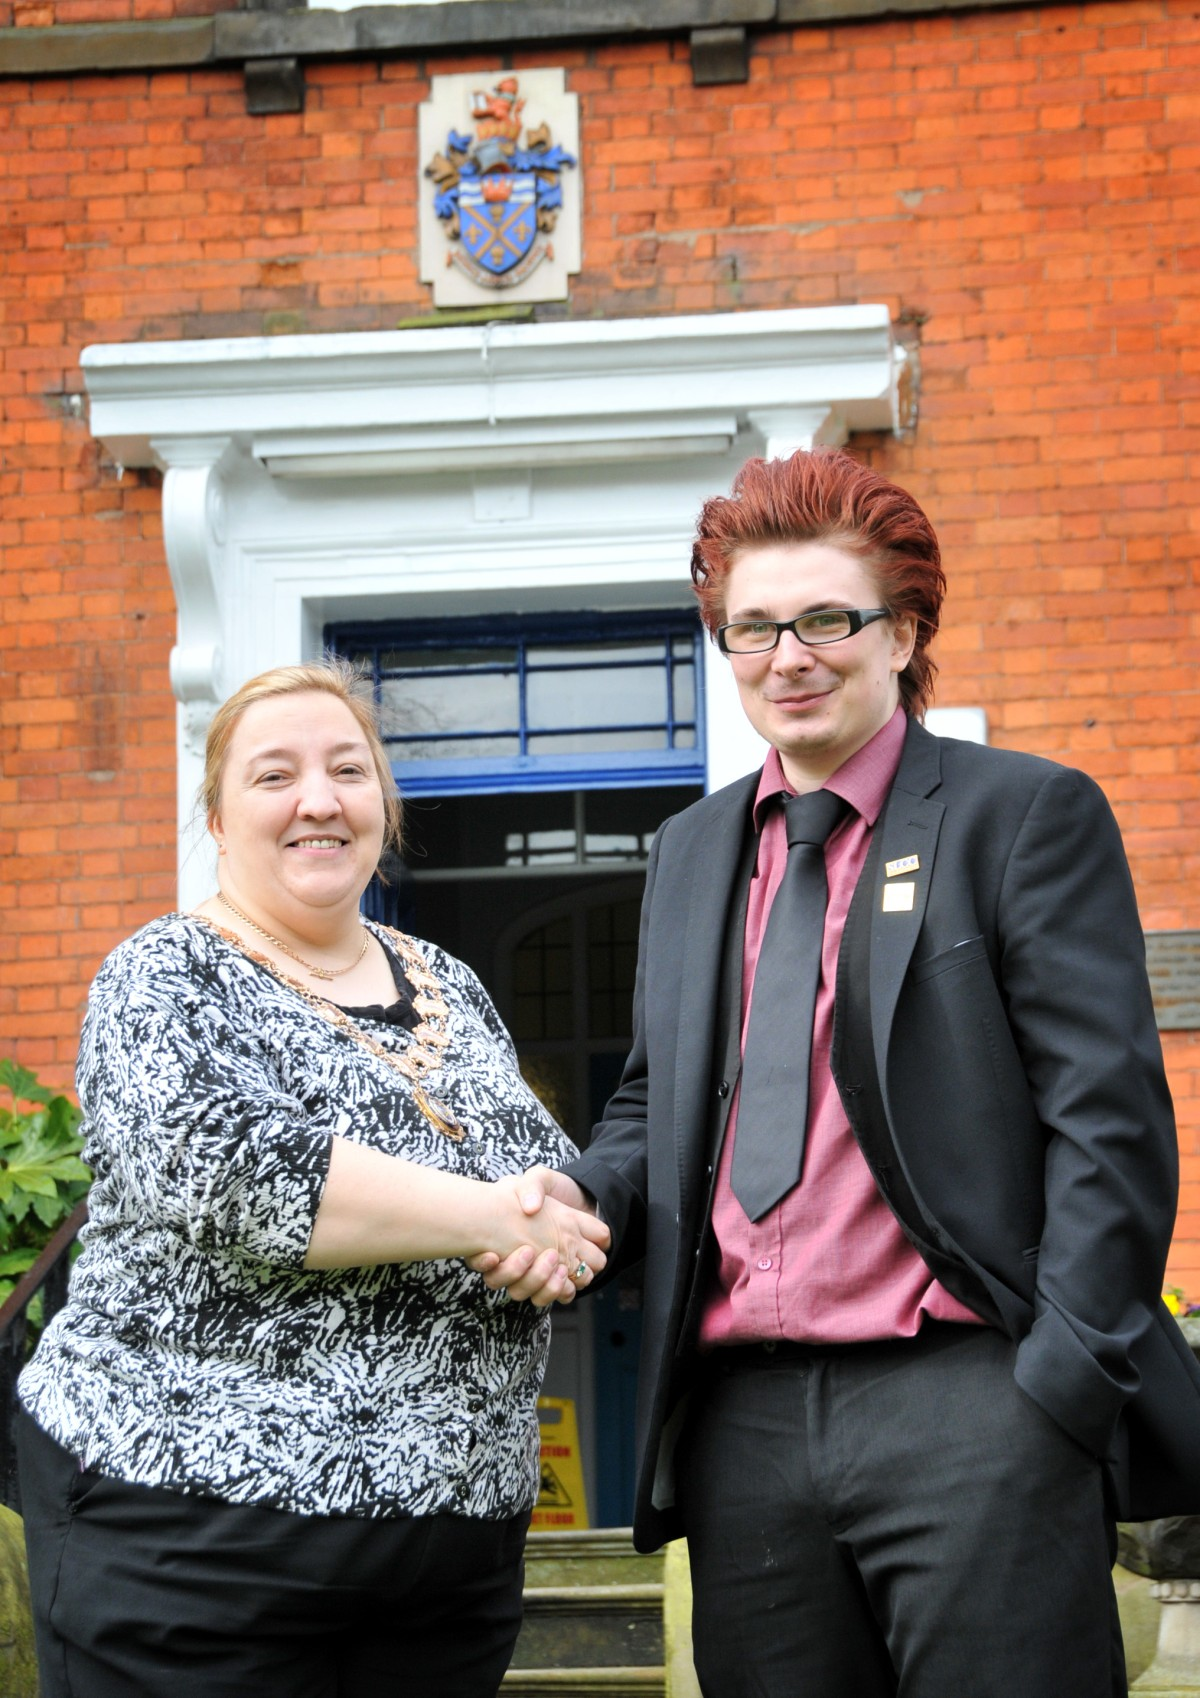 Town Mayor Barbara Coan congratulates Adam Keppel-Garner on his new role as Town Clerk